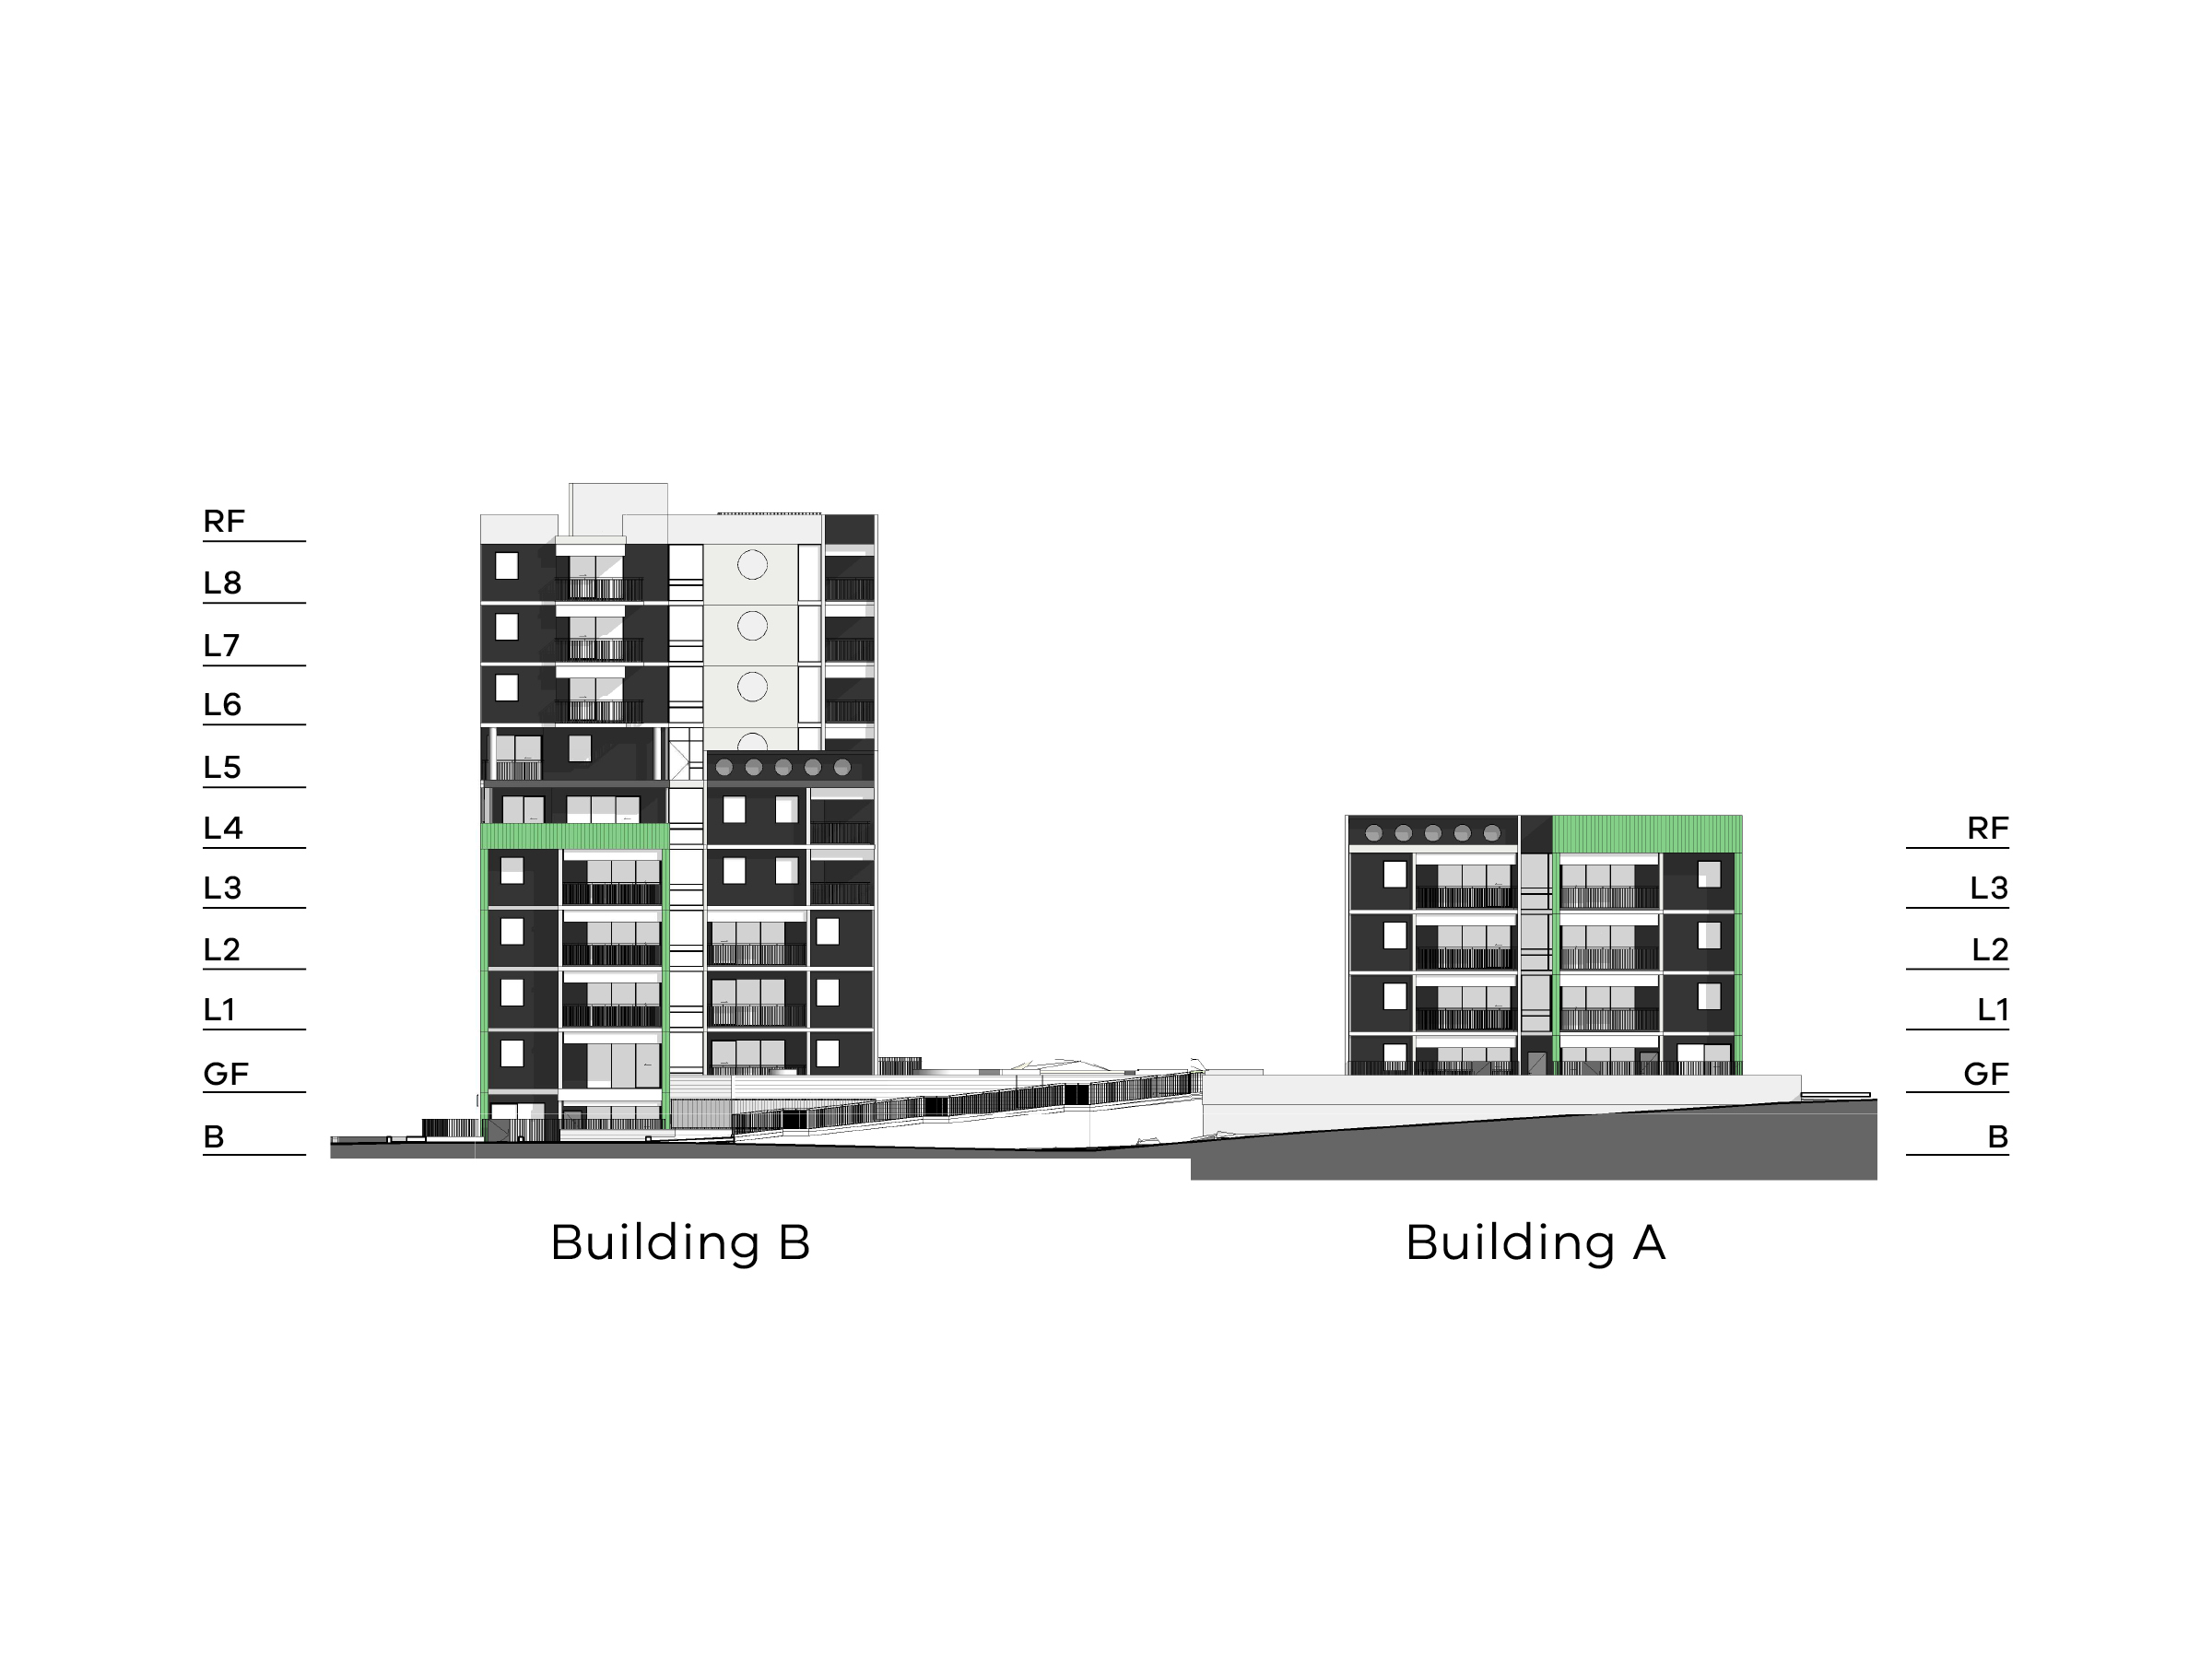 Diagram showing the heights of buildings A and B as seen from Debneys Park. Building A has a basement, ground floor, level 1-3 and a flat roof. Building B has a basement, a ground floor, level 1-8 and a flat roof.